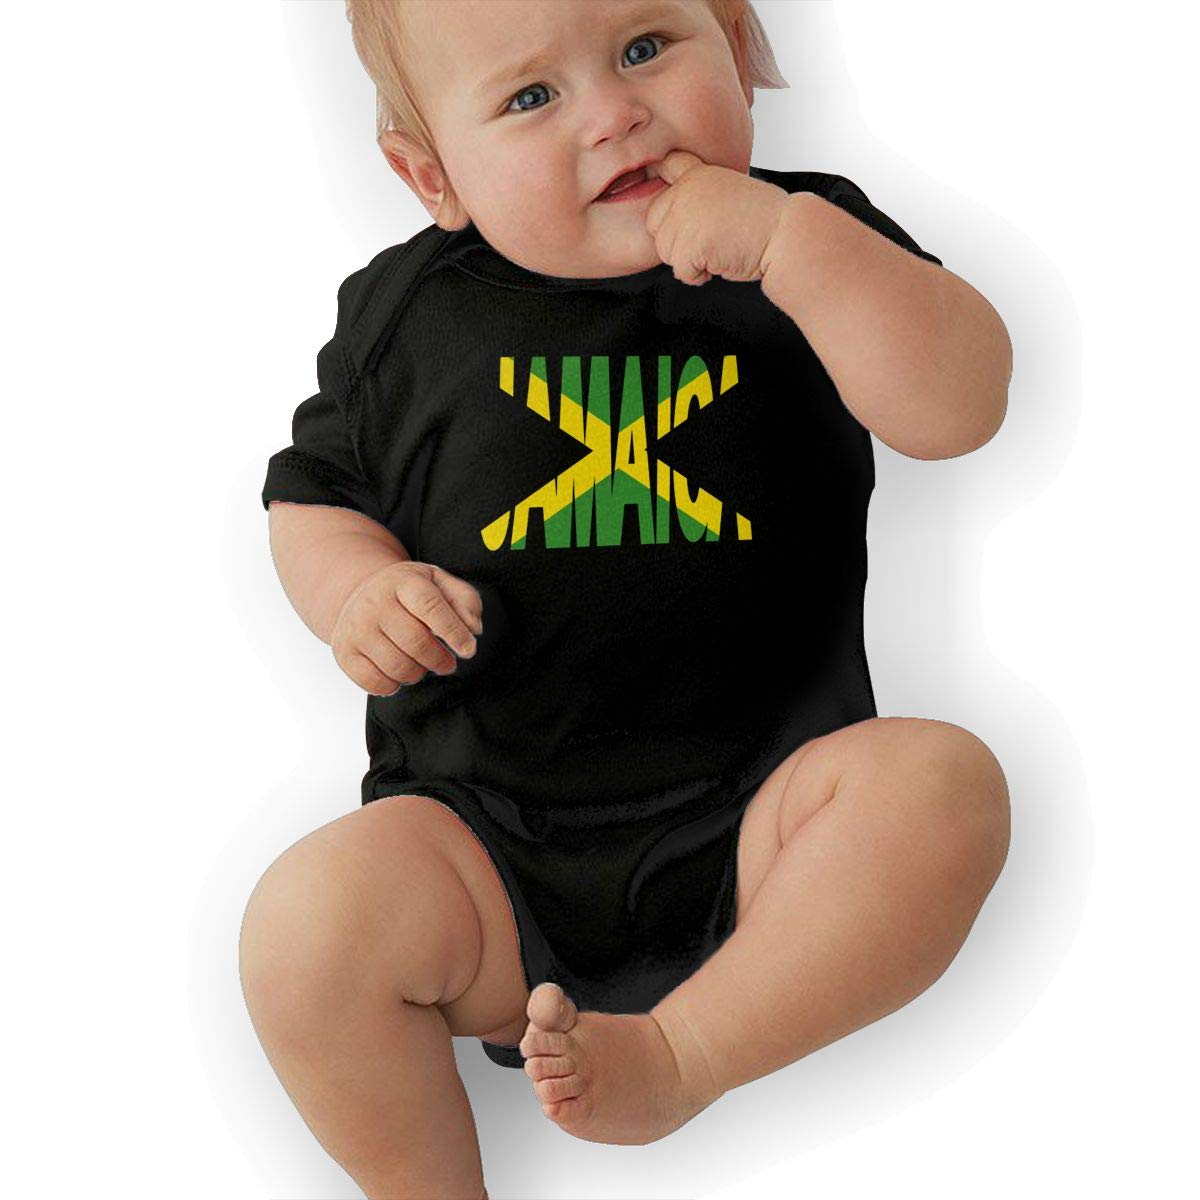 Fashion Jamaica Text with Jamaican Flag Crawler U88oi-8 Short Sleeve Cotton Bodysuit for Baby Girls Boys